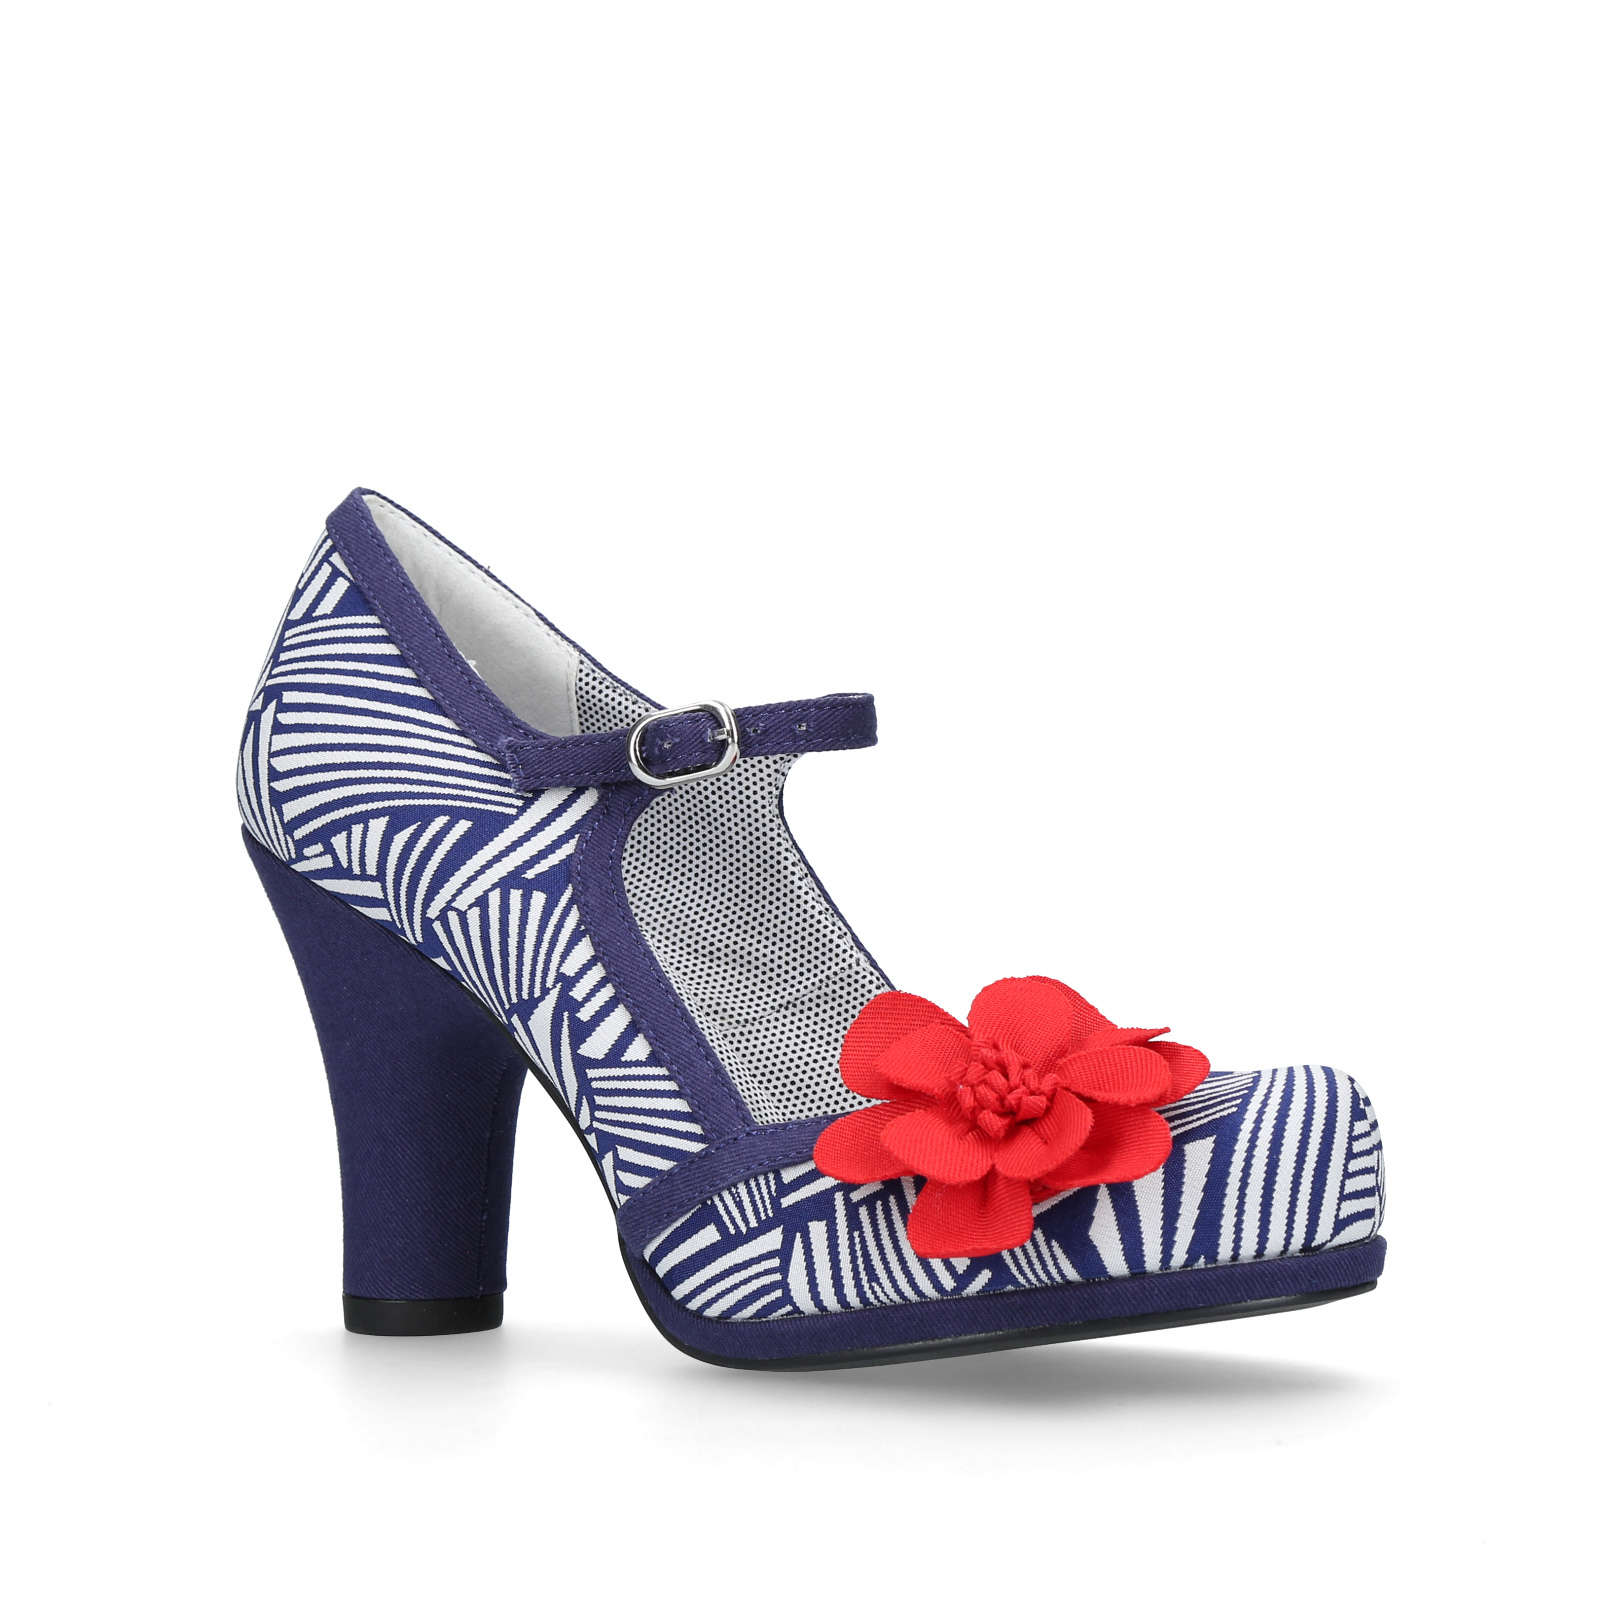 TANYA Ruby Shoo Tanya White   Navy Fabric   Other Occasion Heels Block Heel  by RUBY SHOO cf2a746070e9